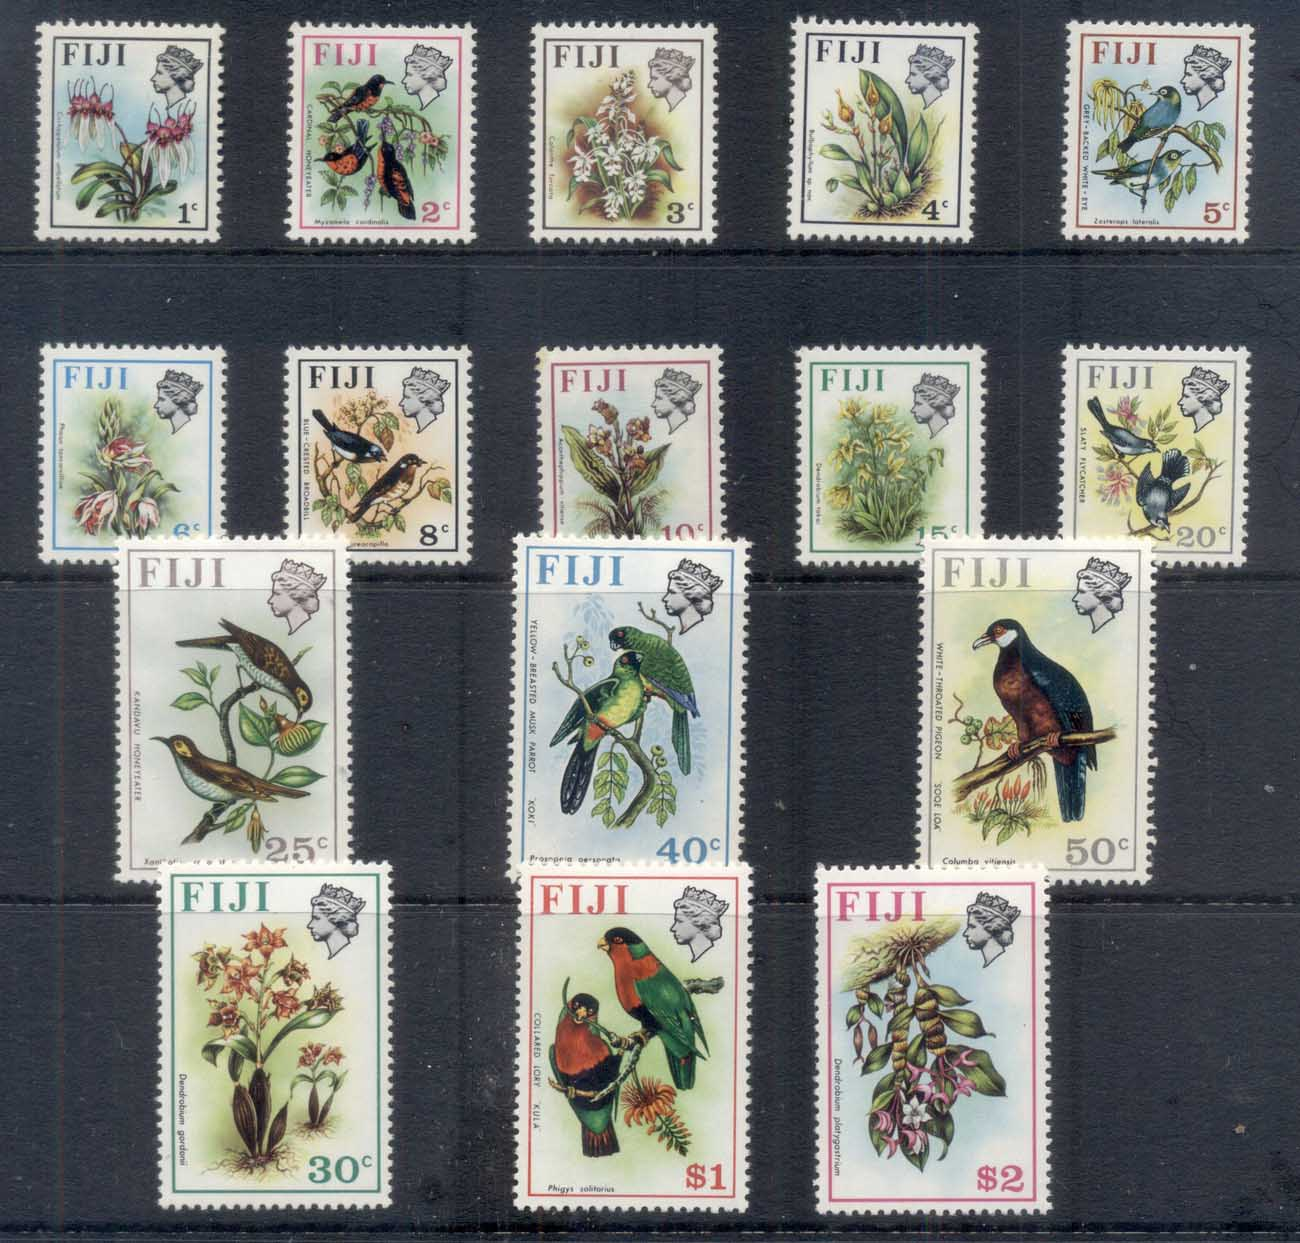 Fiji 1971-72 Pictoriallls, Birds & Flowers MUH